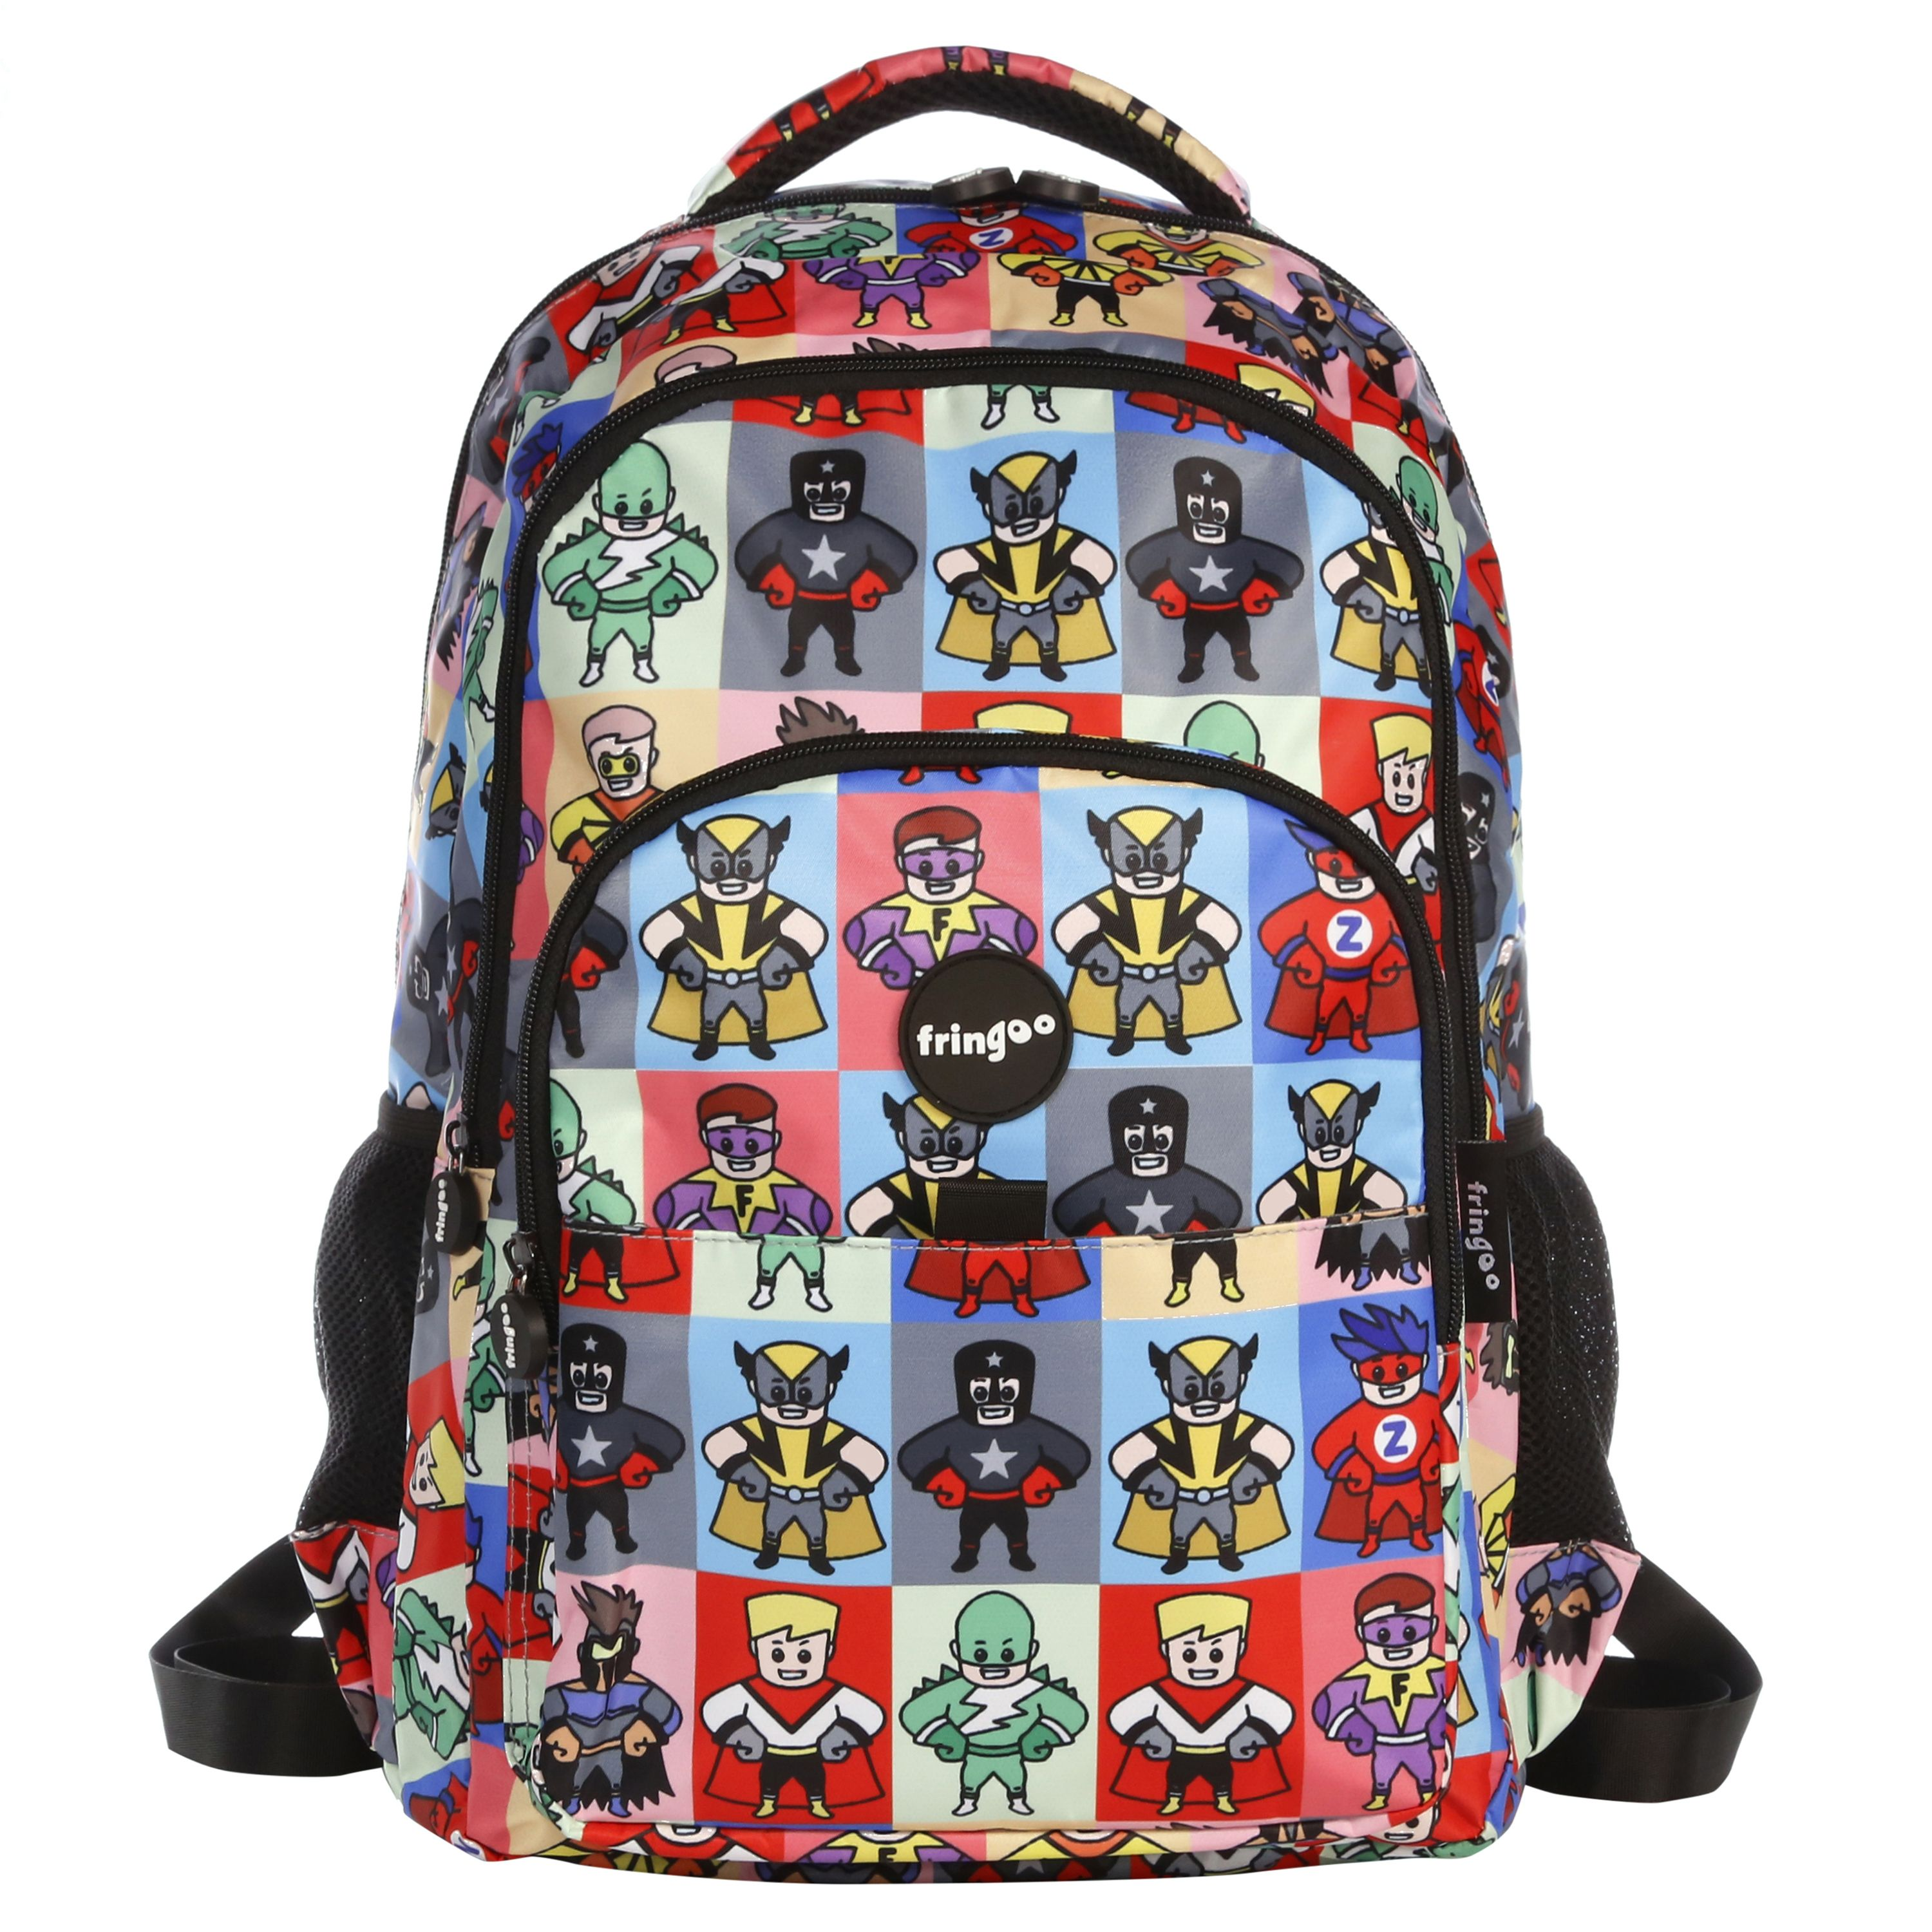 9e1ccc193a4d Multi Compartment Backpack - Superheroes